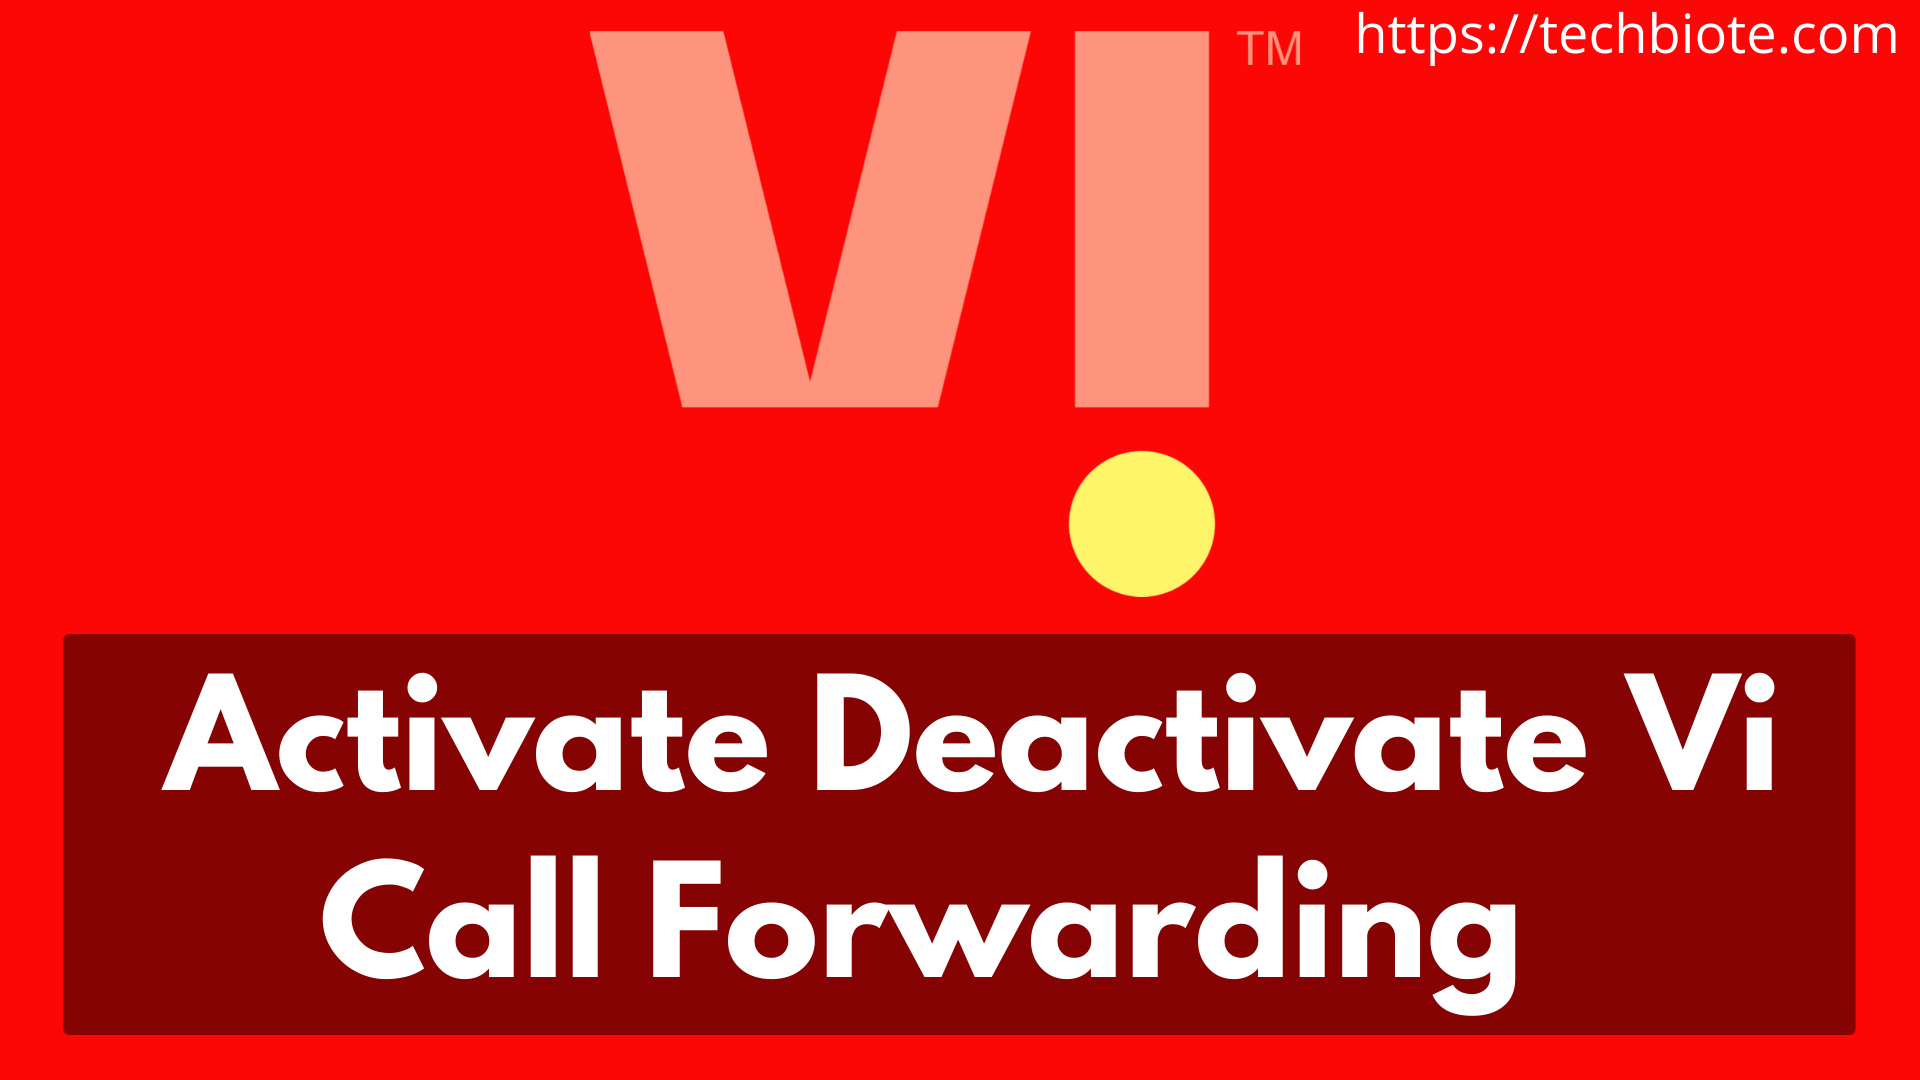 Activate/Deactivate Vi Call Forwarding